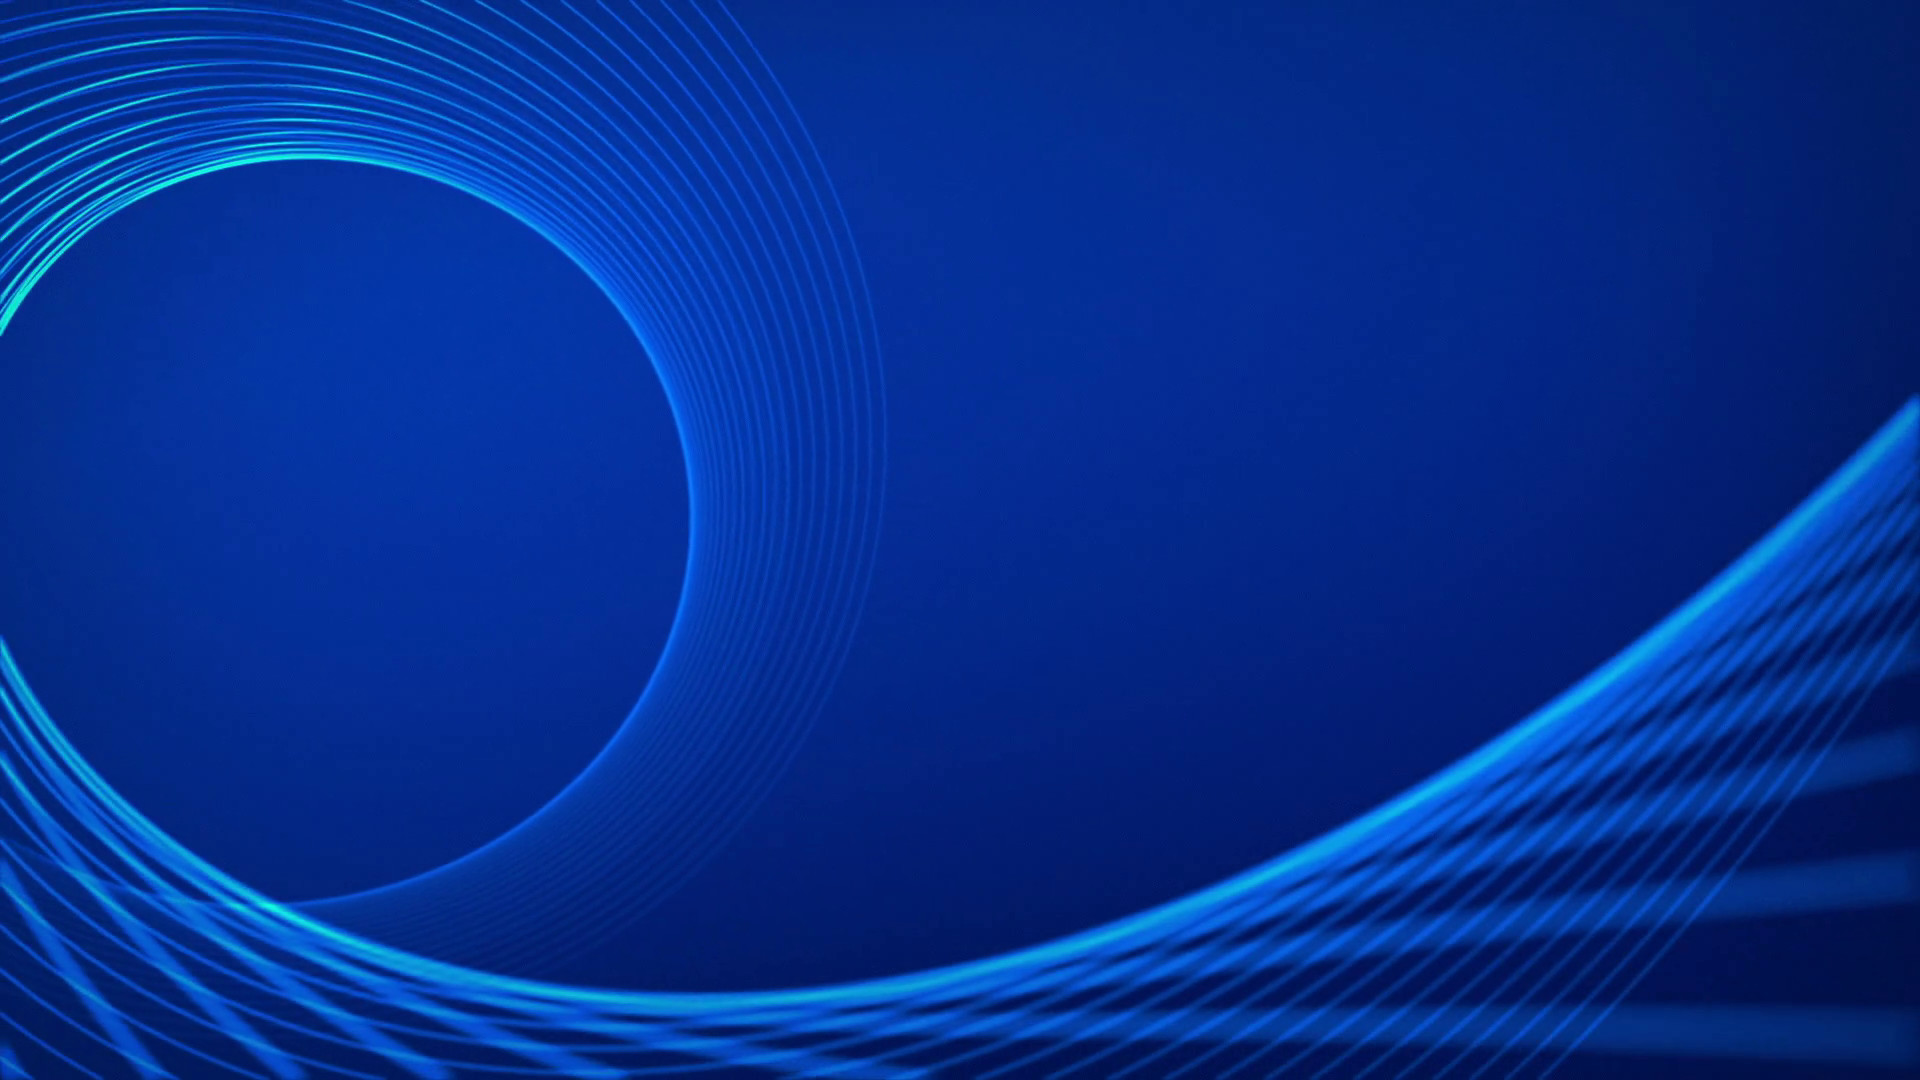 Res: 1920x1080, business professional background images